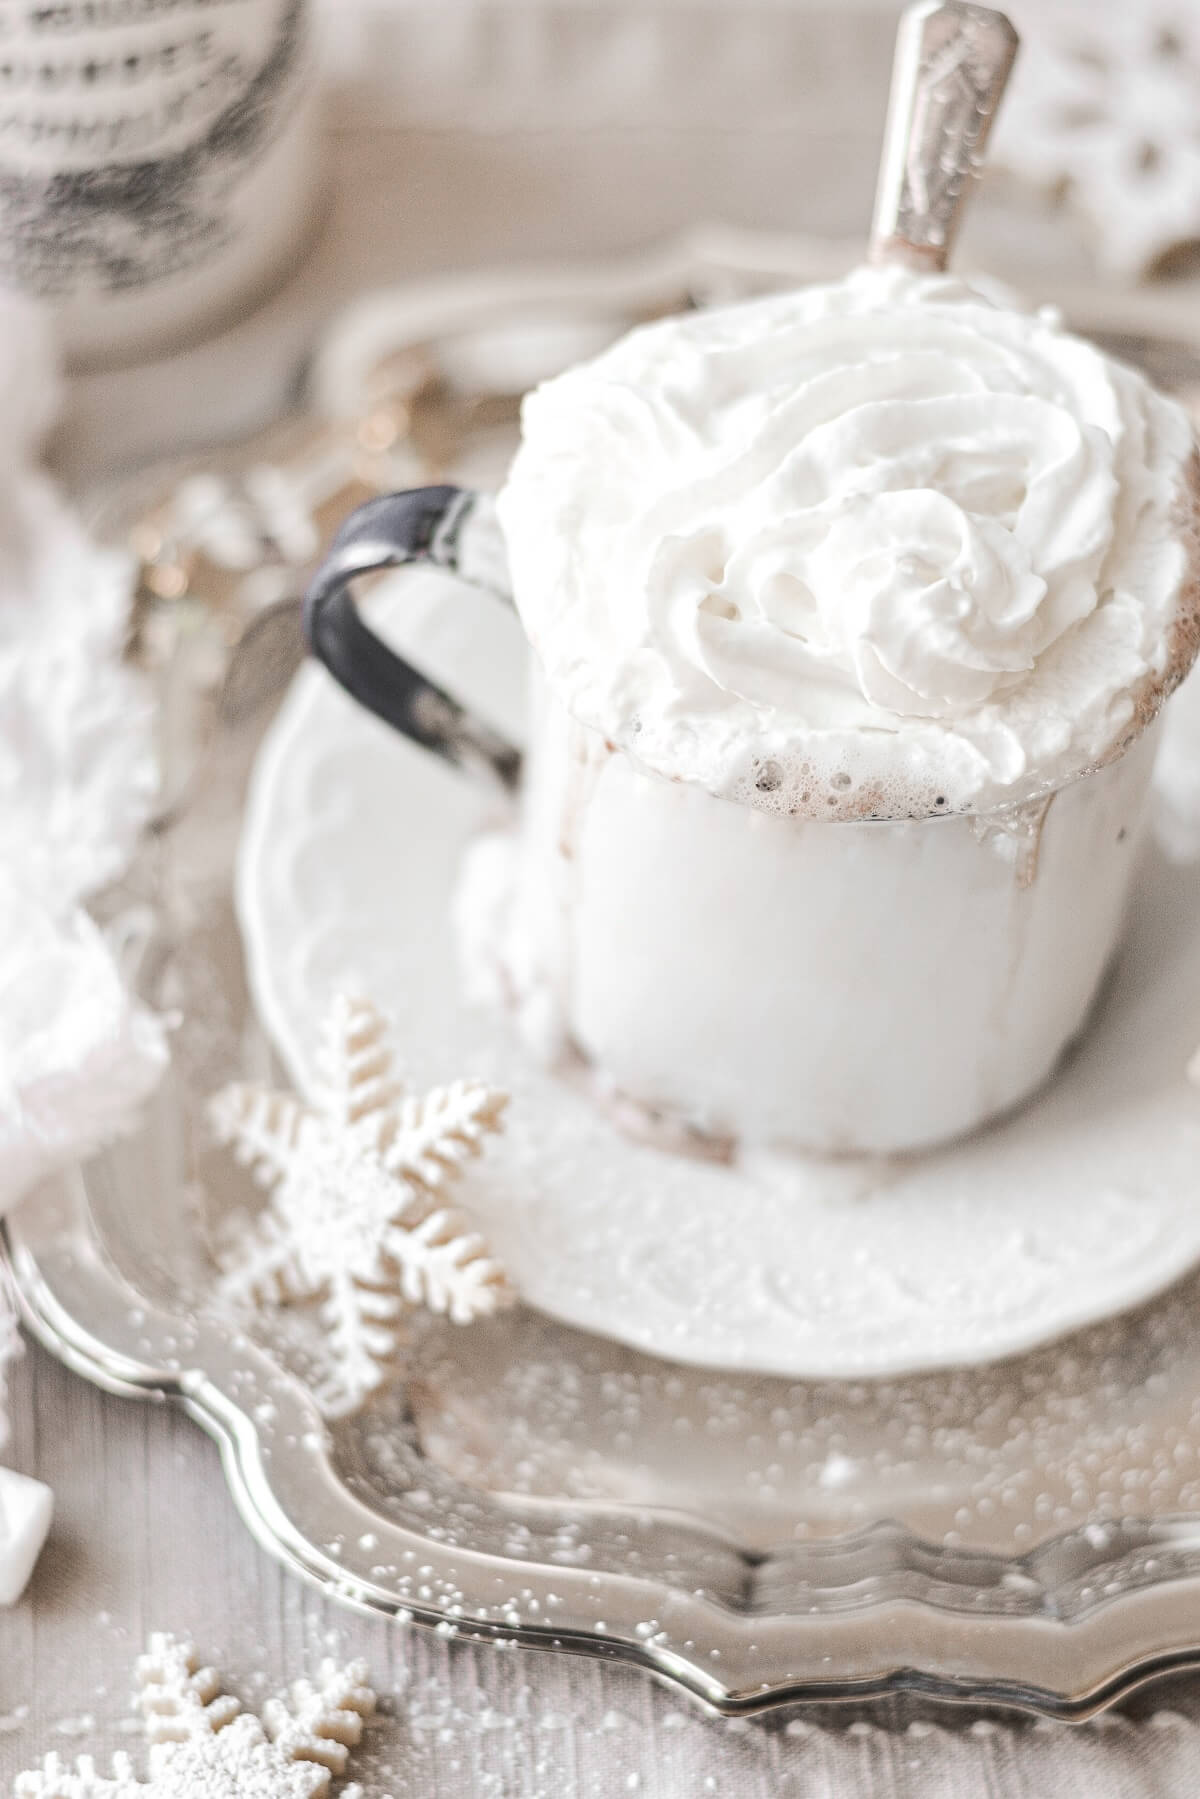 A cup of hot chocolate topped with whipped cream.